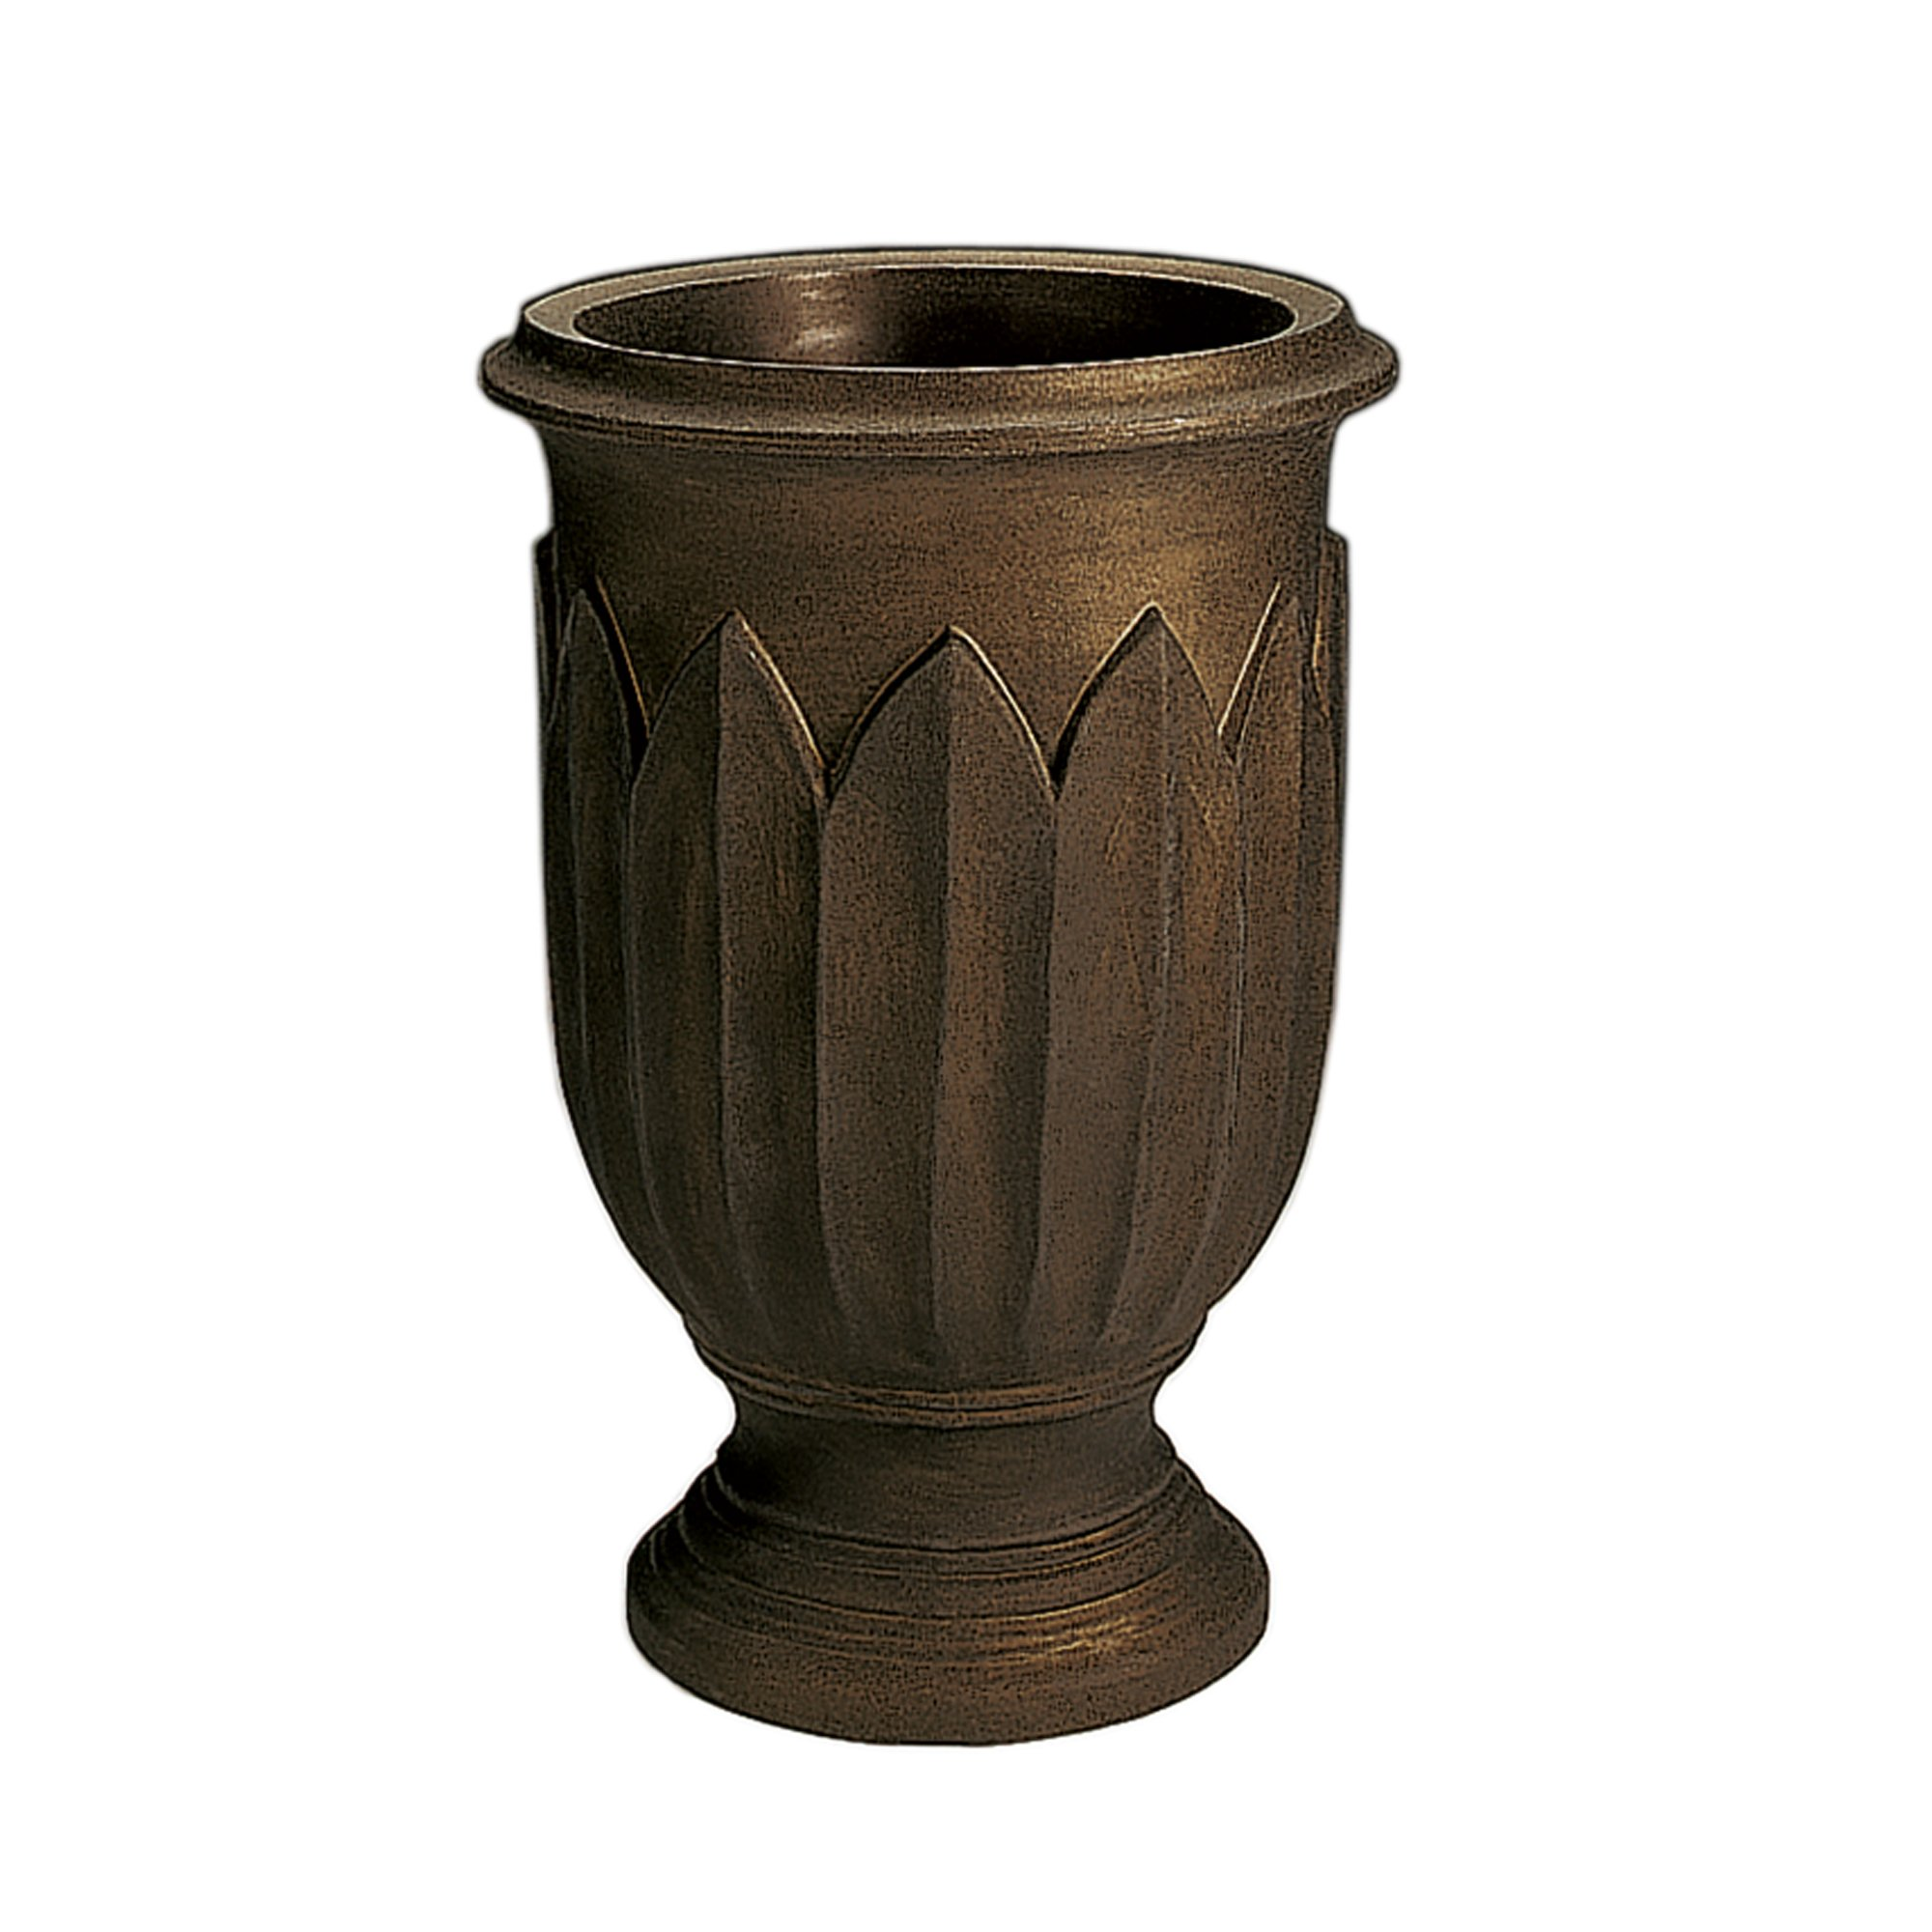 Crescent Garden Rotational Molded Freda Urn, 26'', Old Bronze